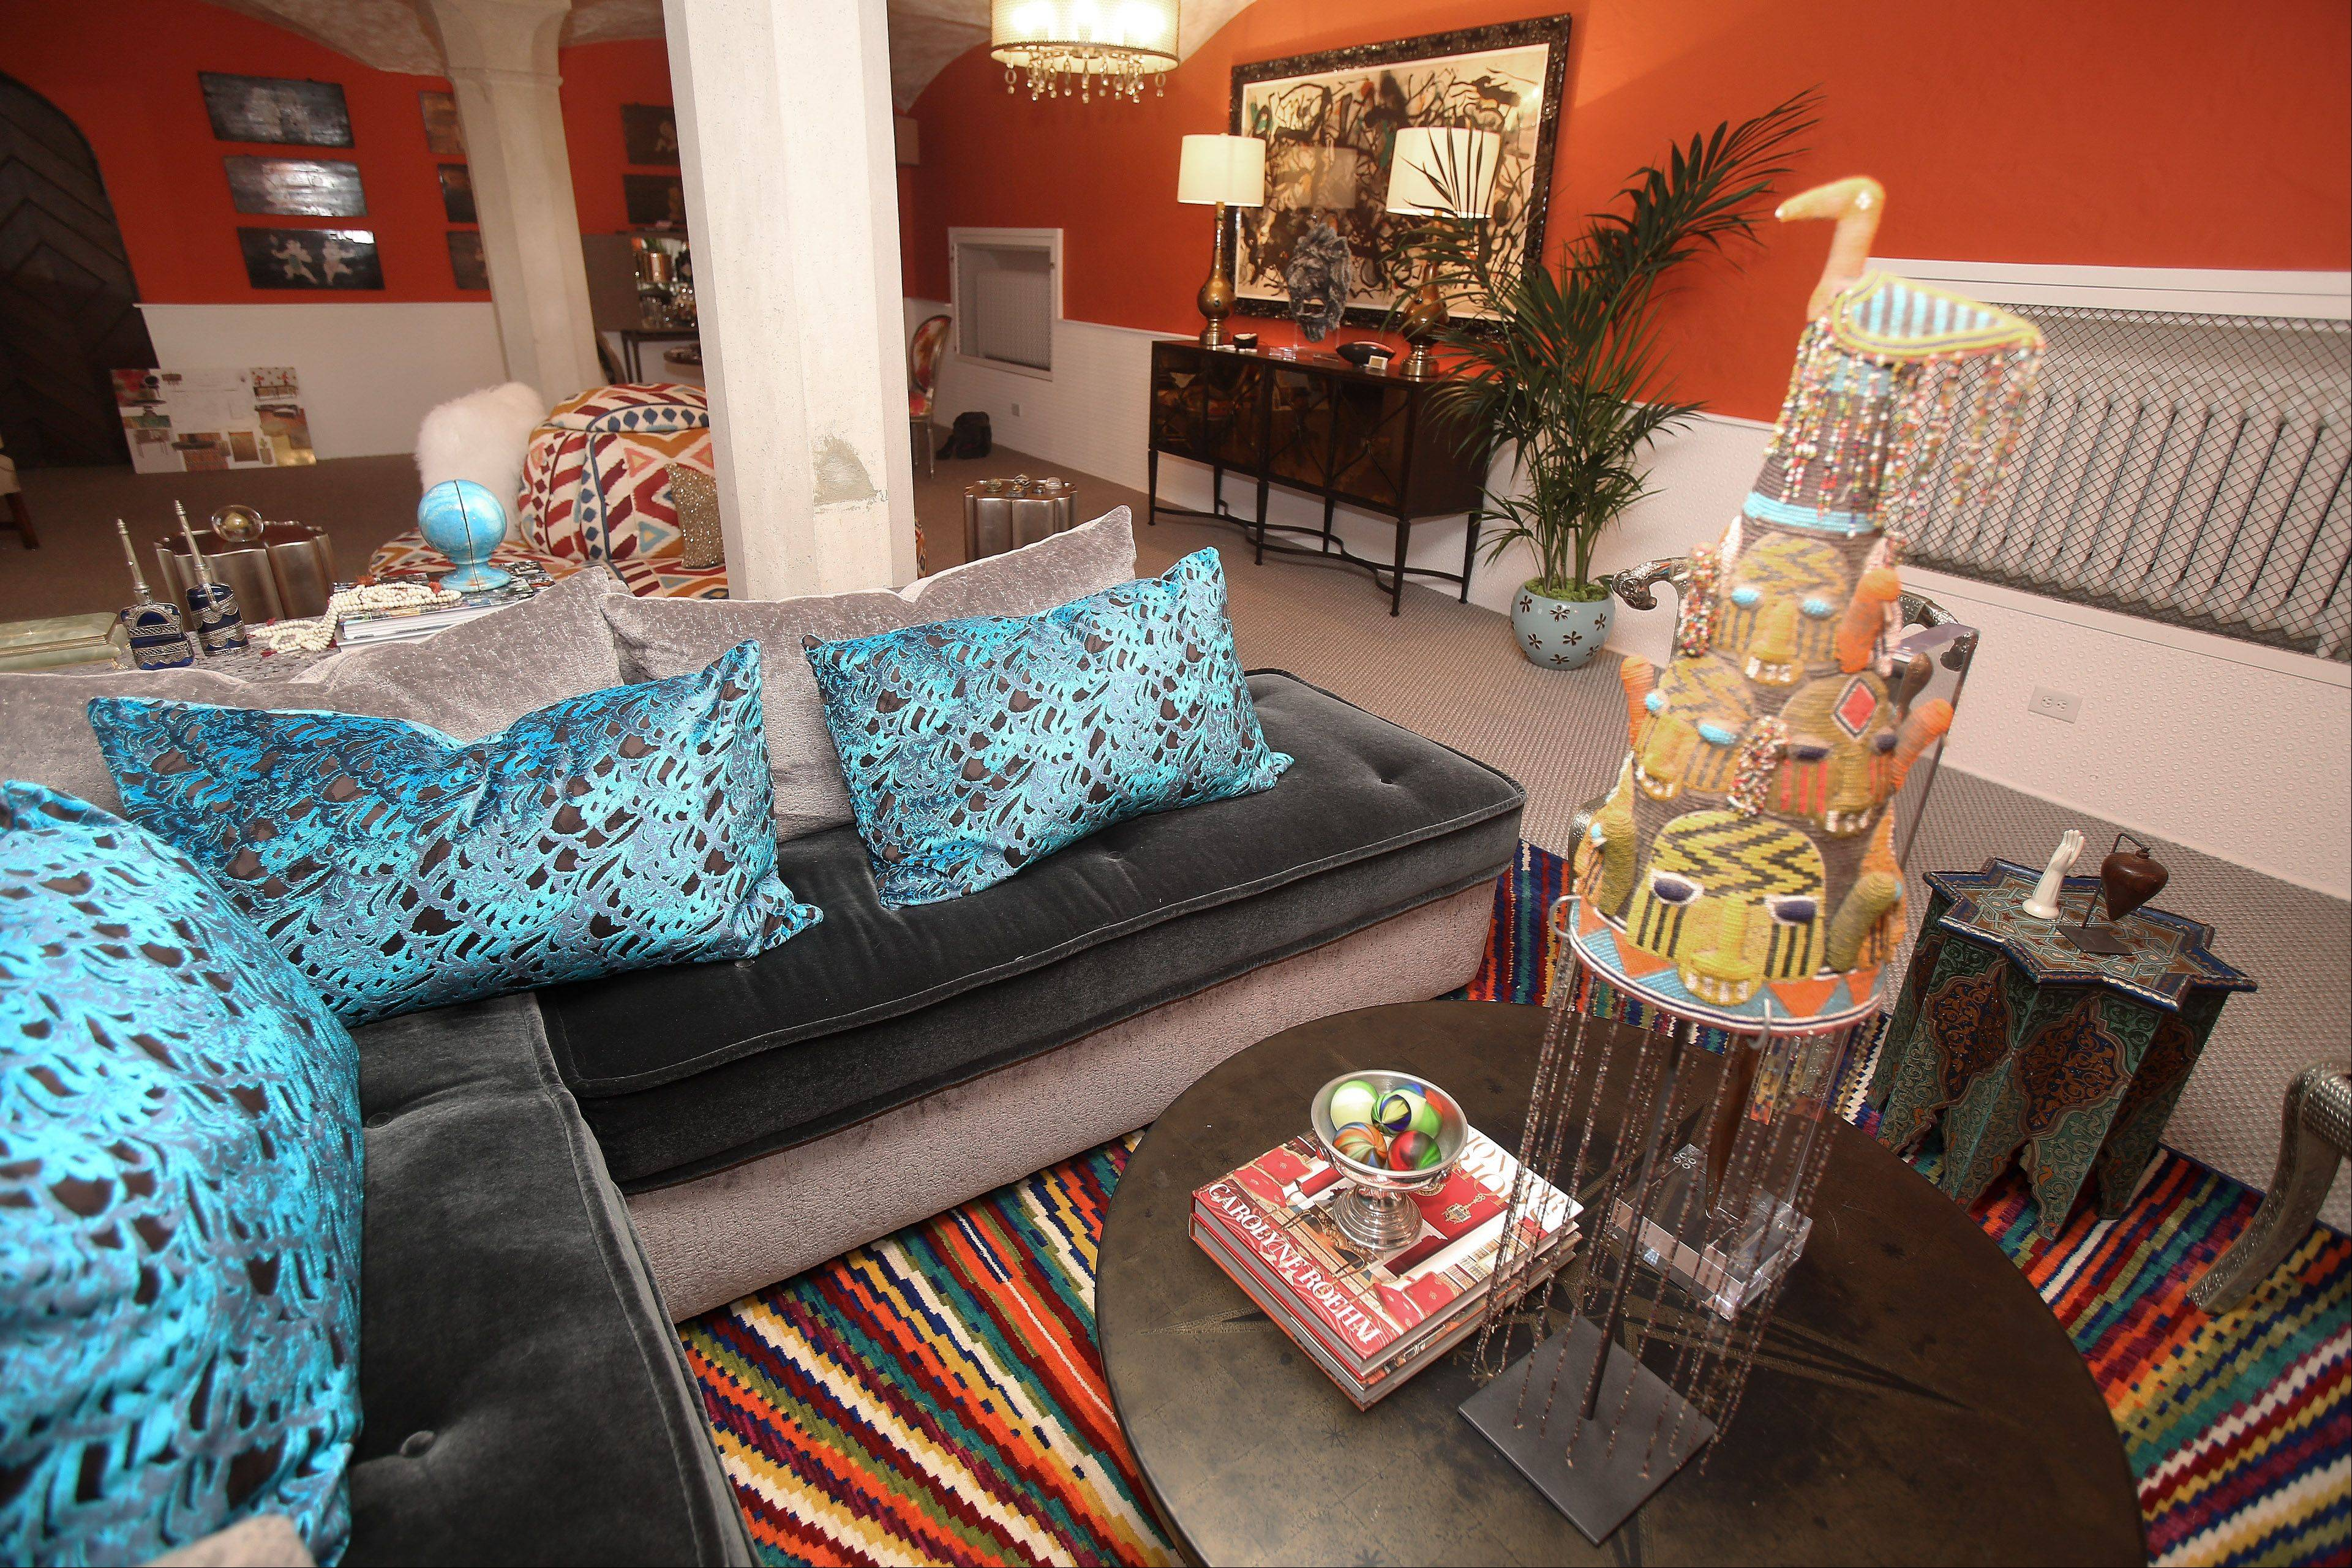 Check out the pillows and the rosy orange walls in the Party Room by Julia Buckingham Edelmann of Chicago.